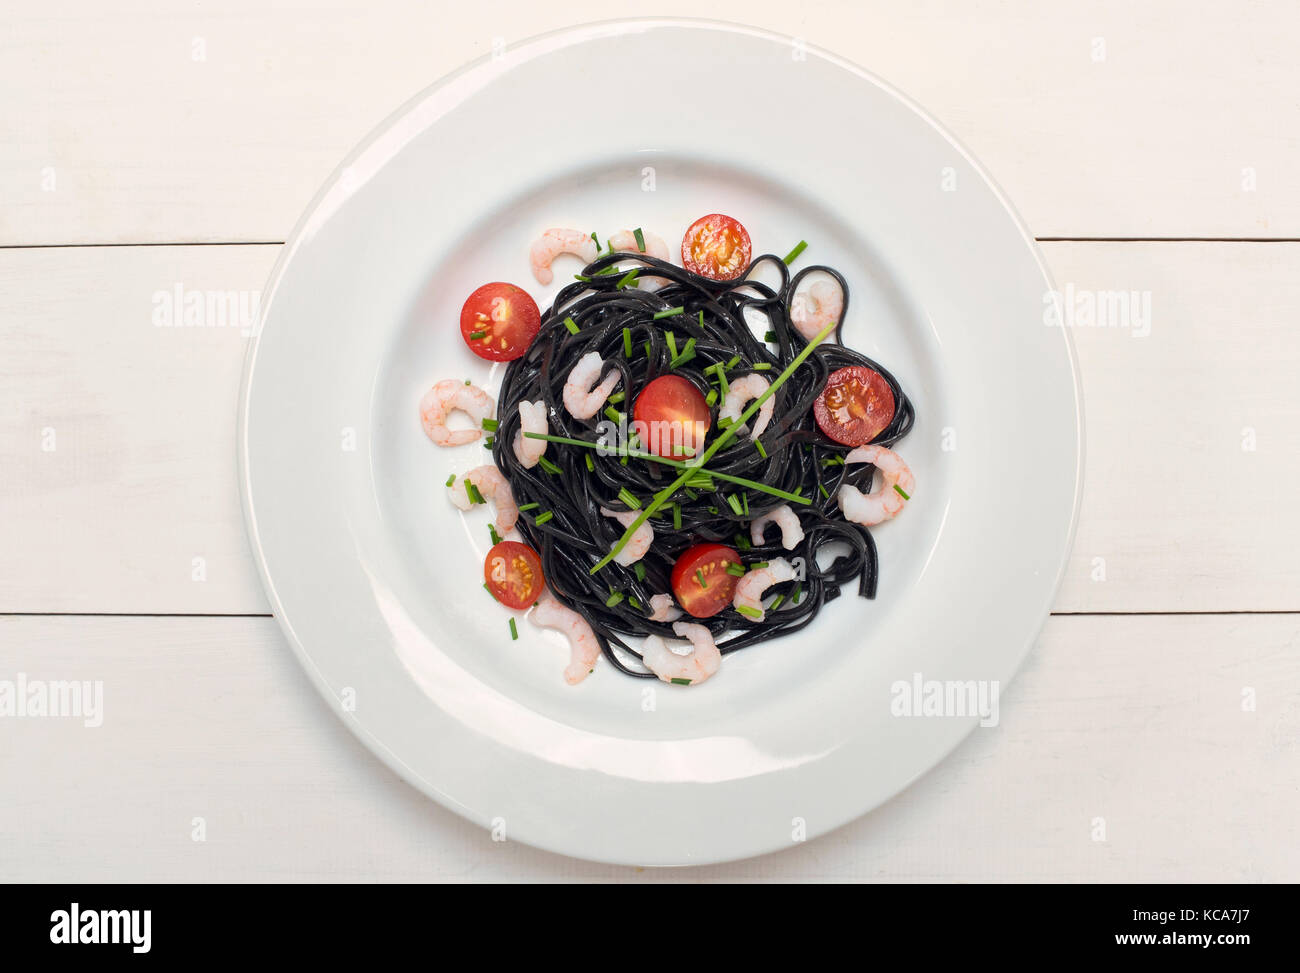 Squid ink black pasta with prawns, chives and tomatoes on a white background Stock Photo